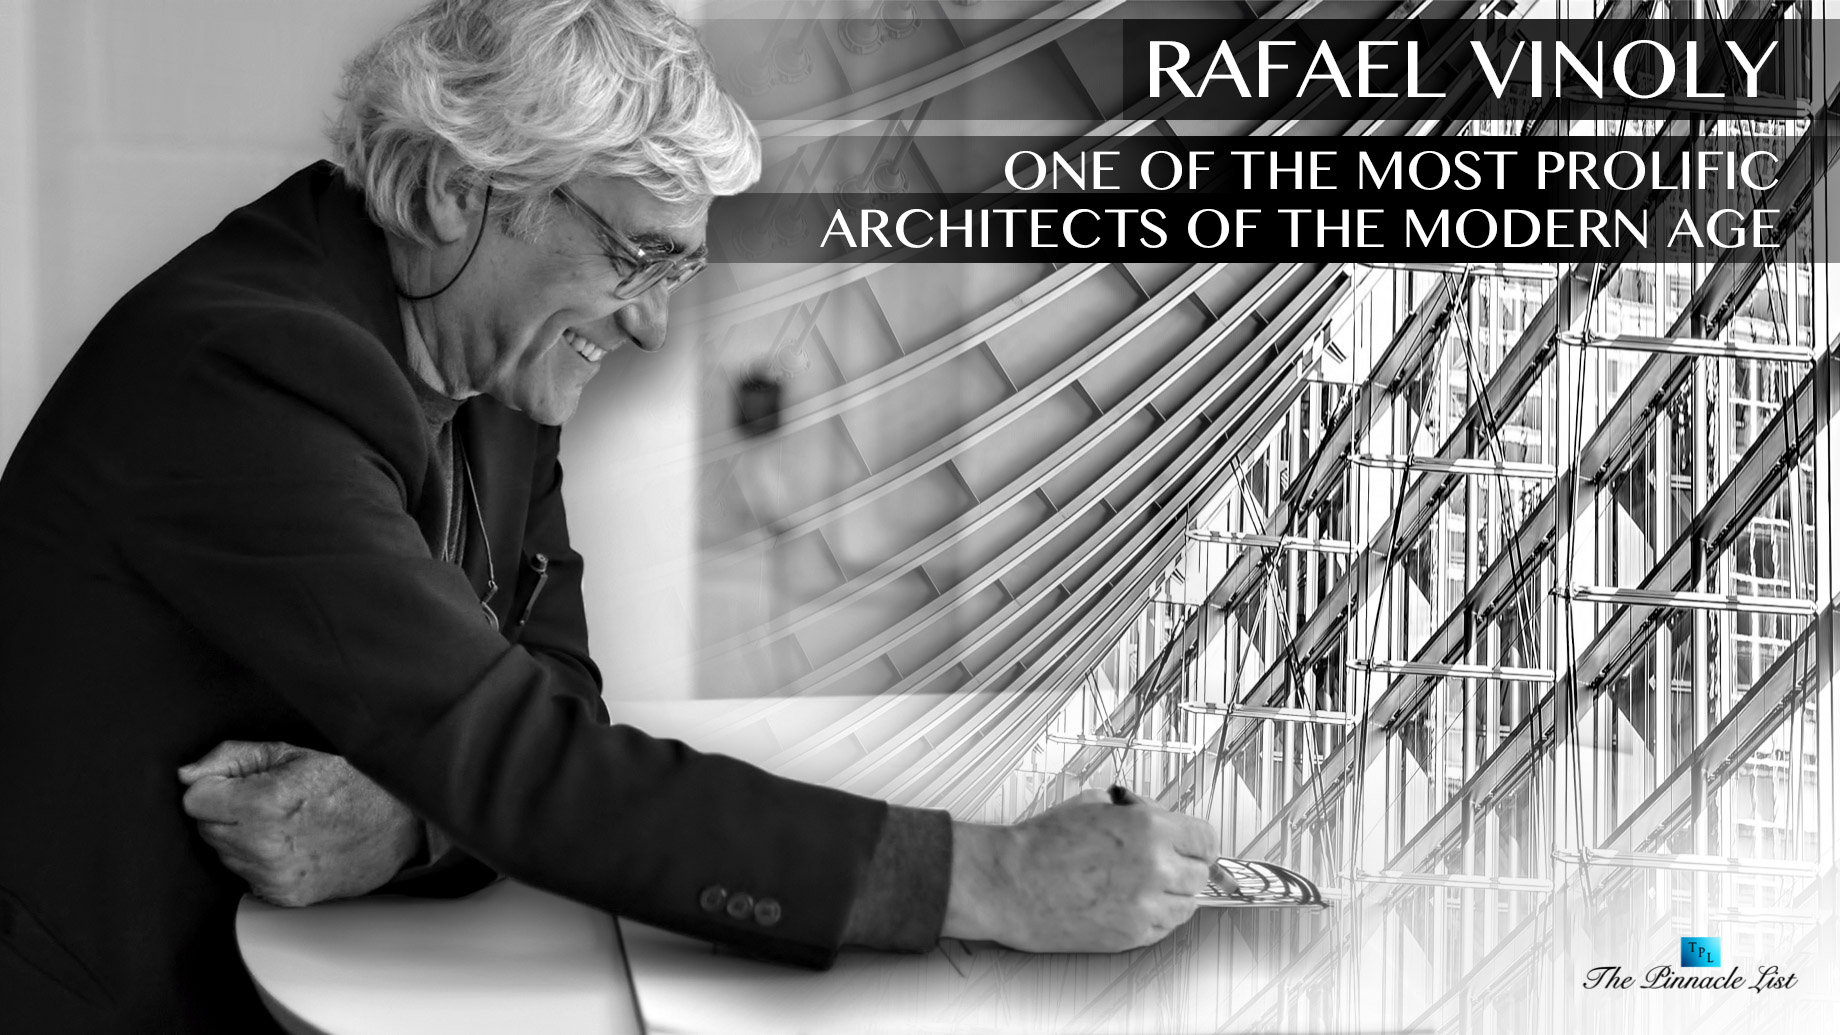 Rafael Vinoly – One of the Most Prolific Architects of the Modern Age